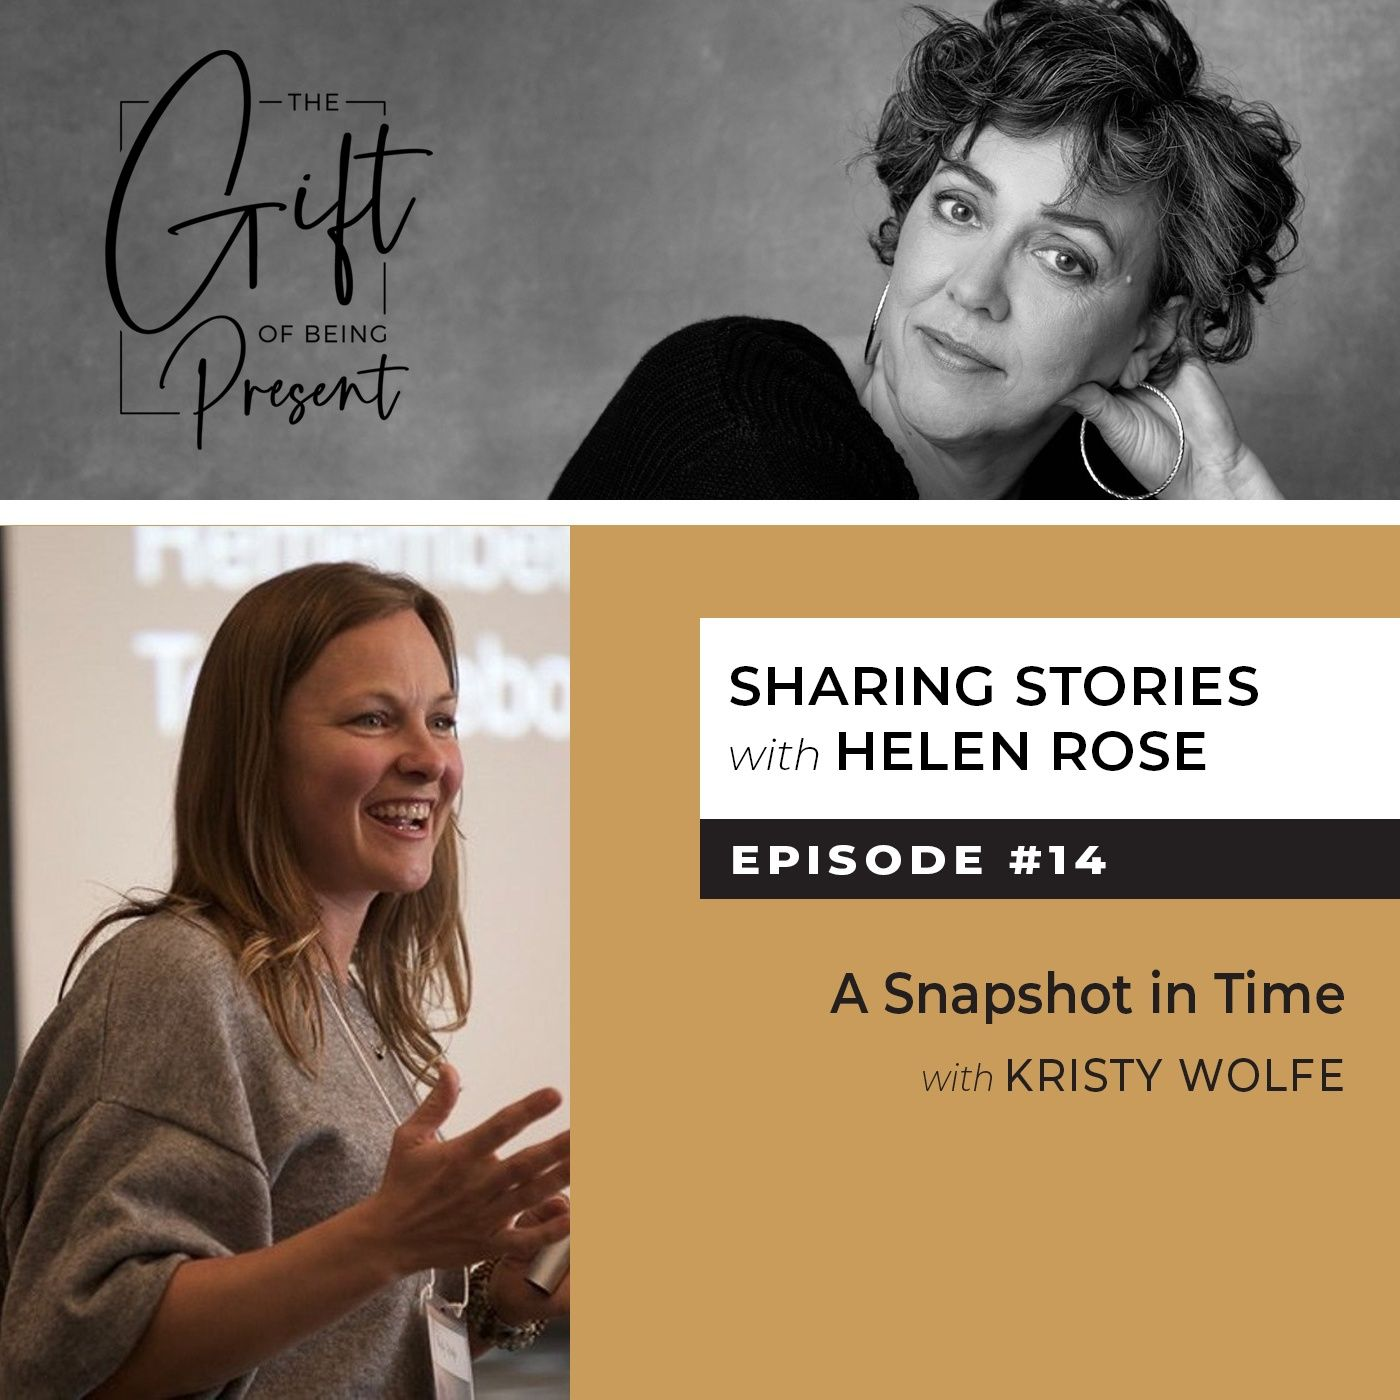 A Snapshot in Time with Kristy Wolfe